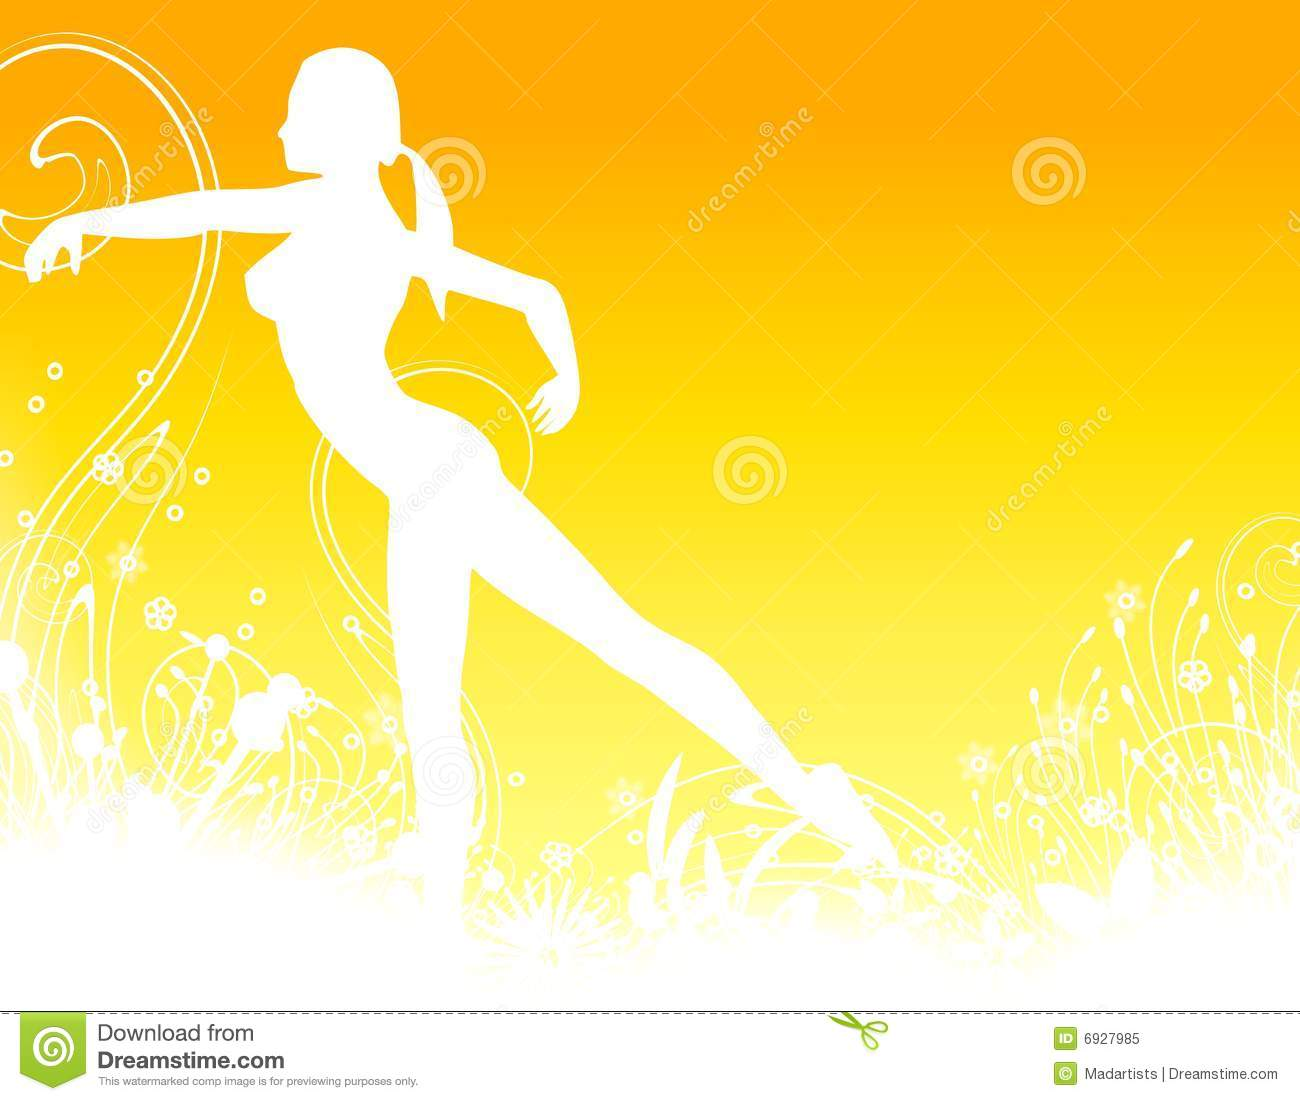 fitness-dance-background-6927985.jpg